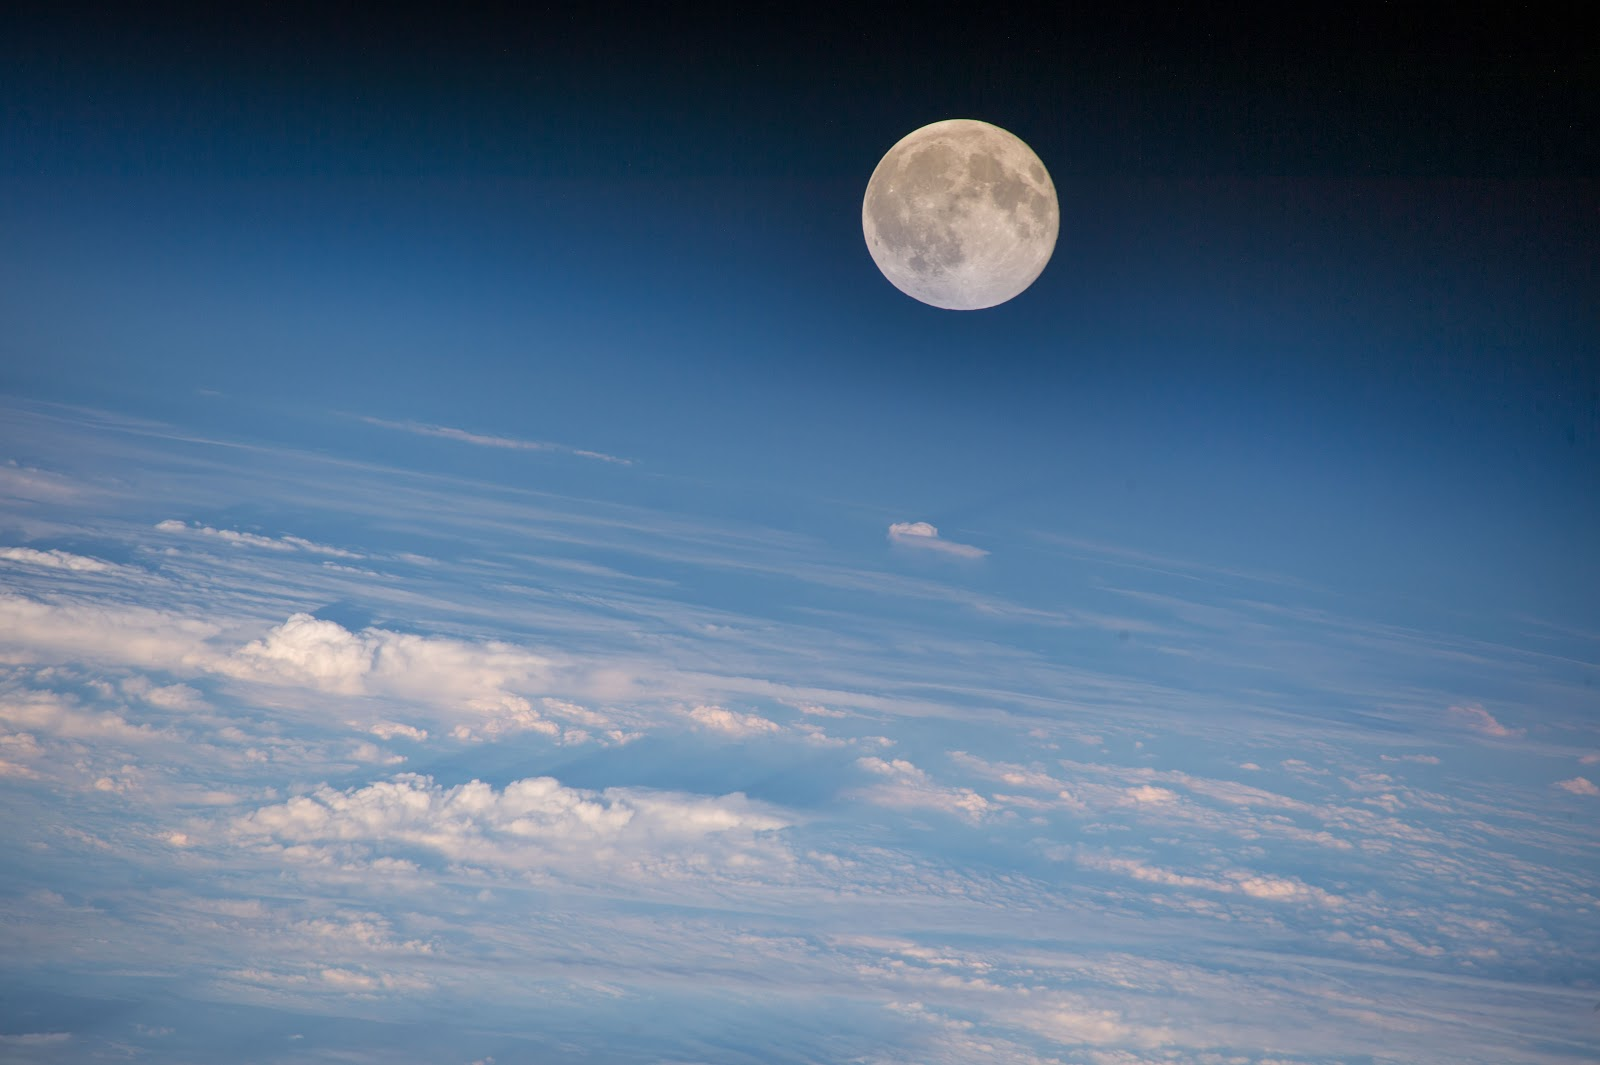 Rise Credit >> Moonrise seen from the International Space Station | Earth Blog